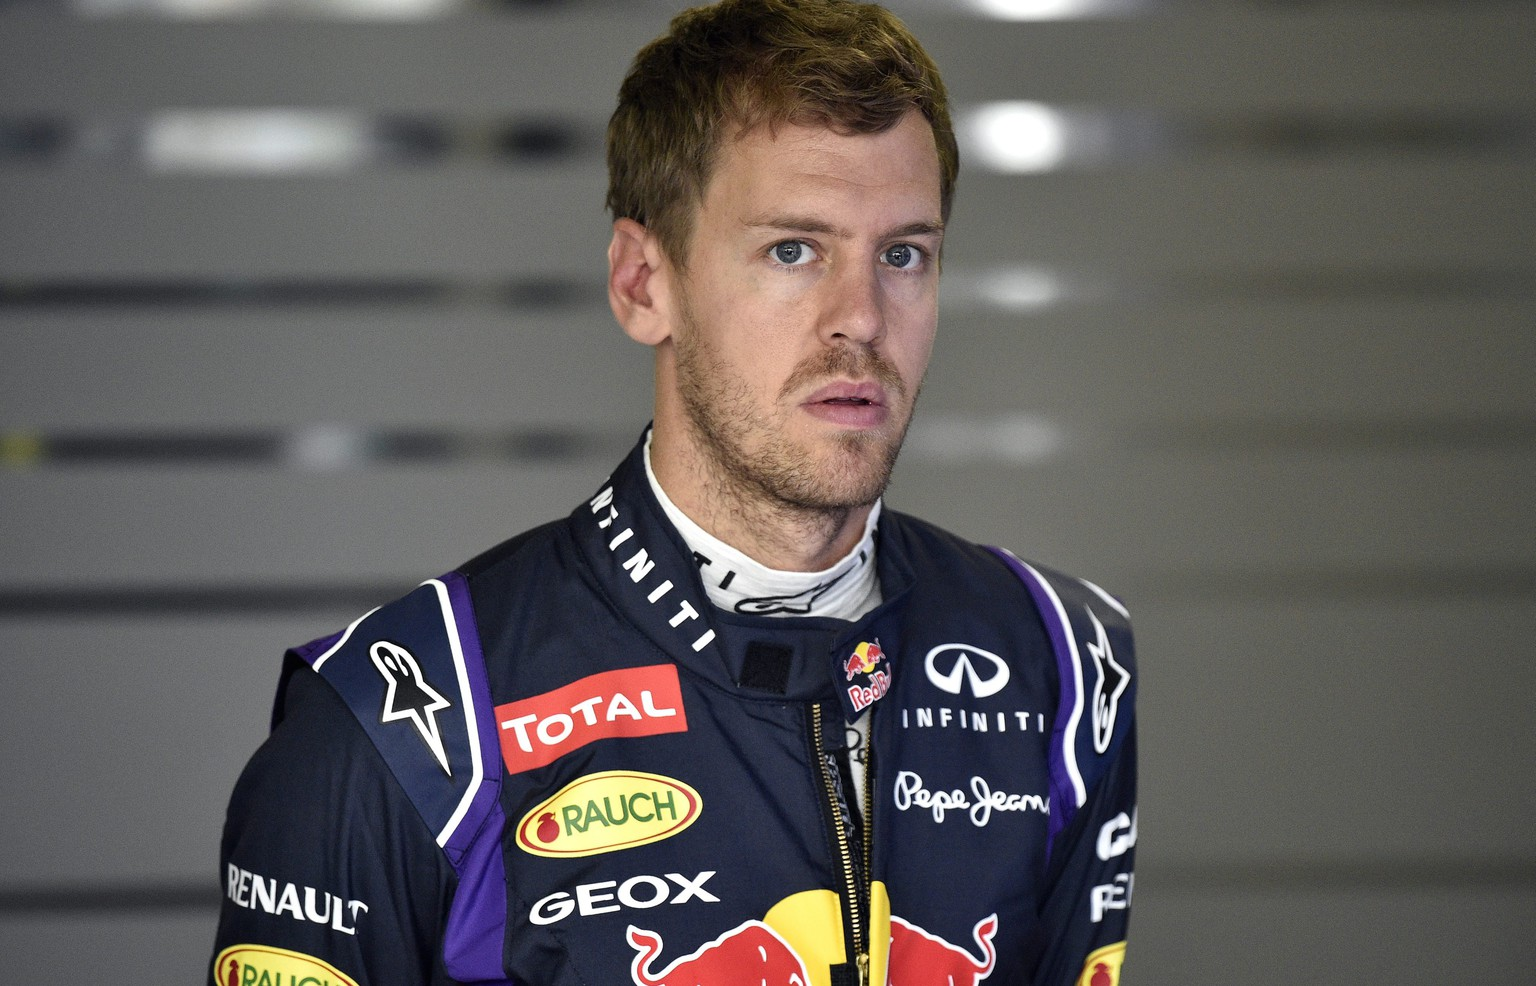 epa04430653 German Formula One driver Sebastian Vettel of Red Bull Racing looks on in the garage during the third practice session of the Japanese Formula One Grand Prix at the Suzuka Circuit in Suzuka, Mie Prefecture, central Japan, 04 October 2014. The Japanese Formula One Grand Prix will be held on 05 October 2014. According to his team, Sebastian Vettel will leave Infiniti Red Bull Racing at the end of this season.  EPA/FRANCK ROBICHON